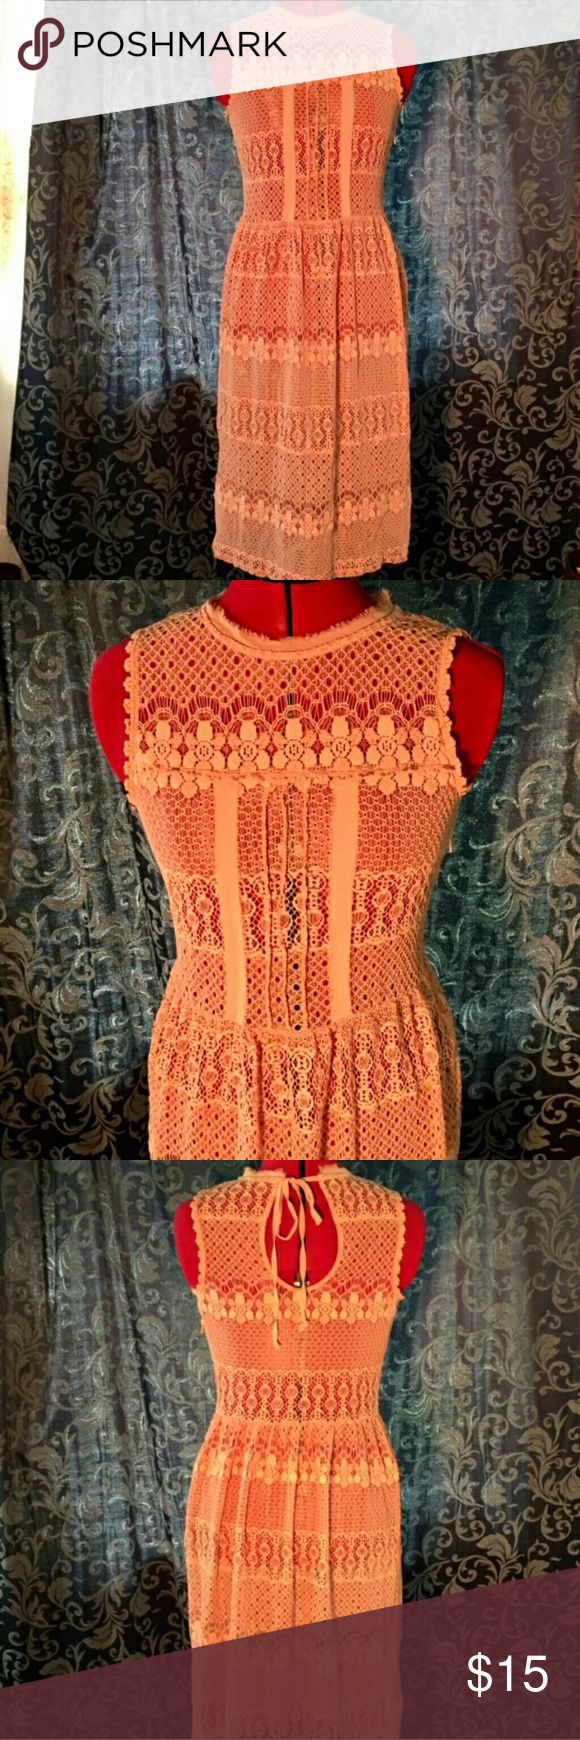 "✨SALE✨ Orange lace dress This fun summer cover up dress is perfect over a baithing suit or tank top or any out fit that lacks a little texture or color. Fits: bust- 33""-38"" waist- 25""-30"" Dresses"